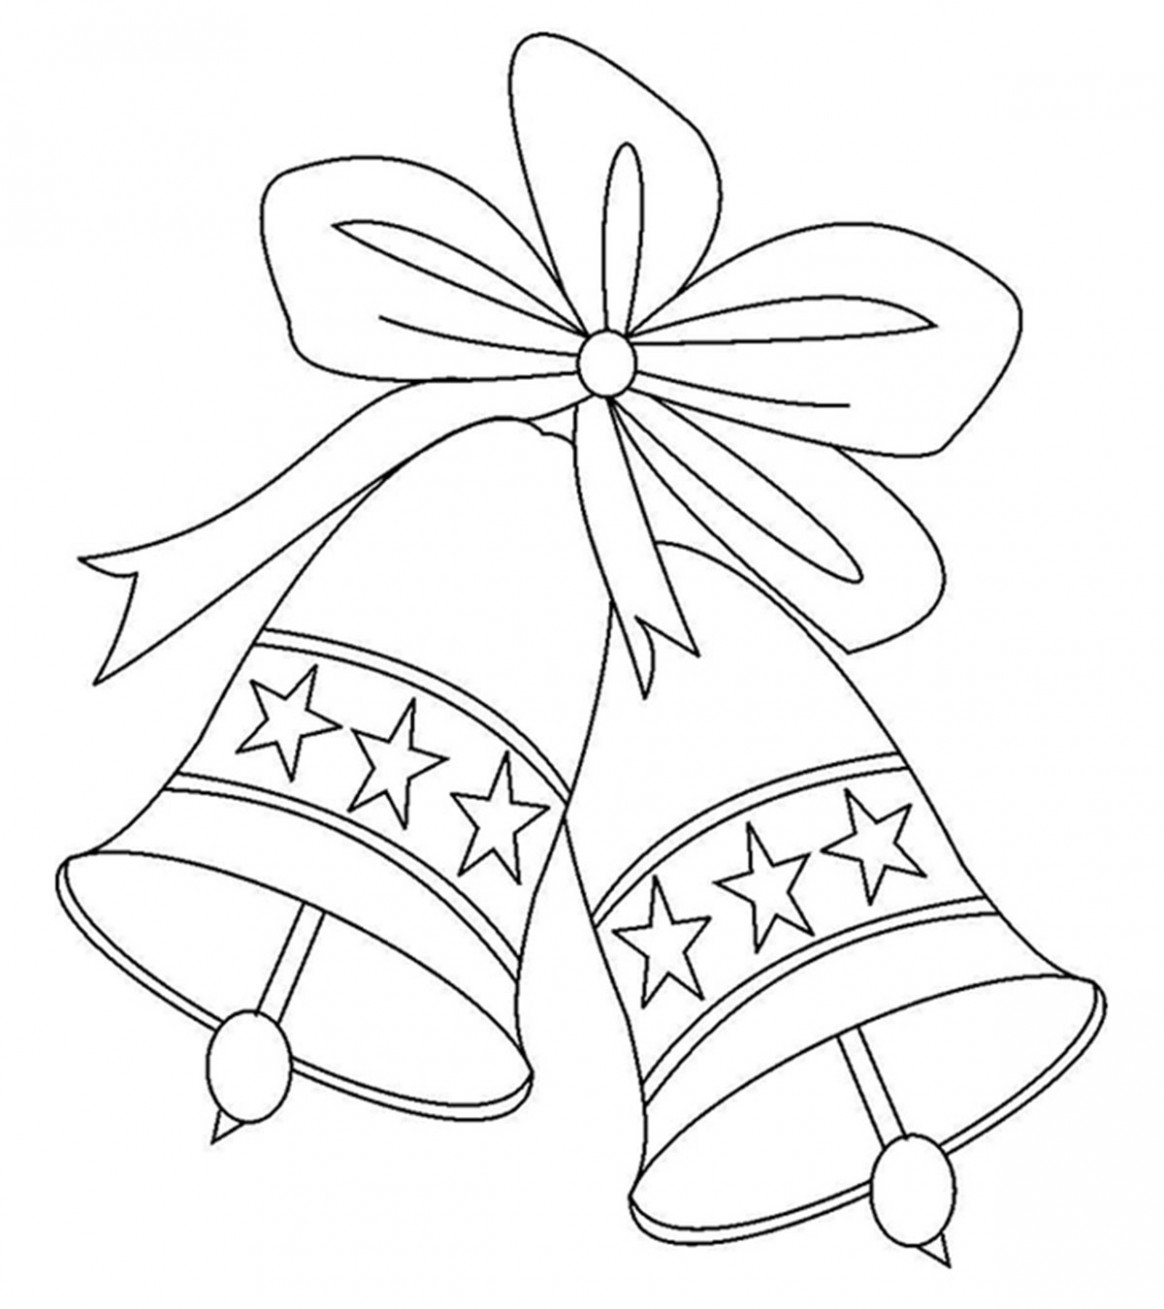 Top 16 Free Printable Cute Bell Coloring Pages Online – Christmas Colouring Pages Bells